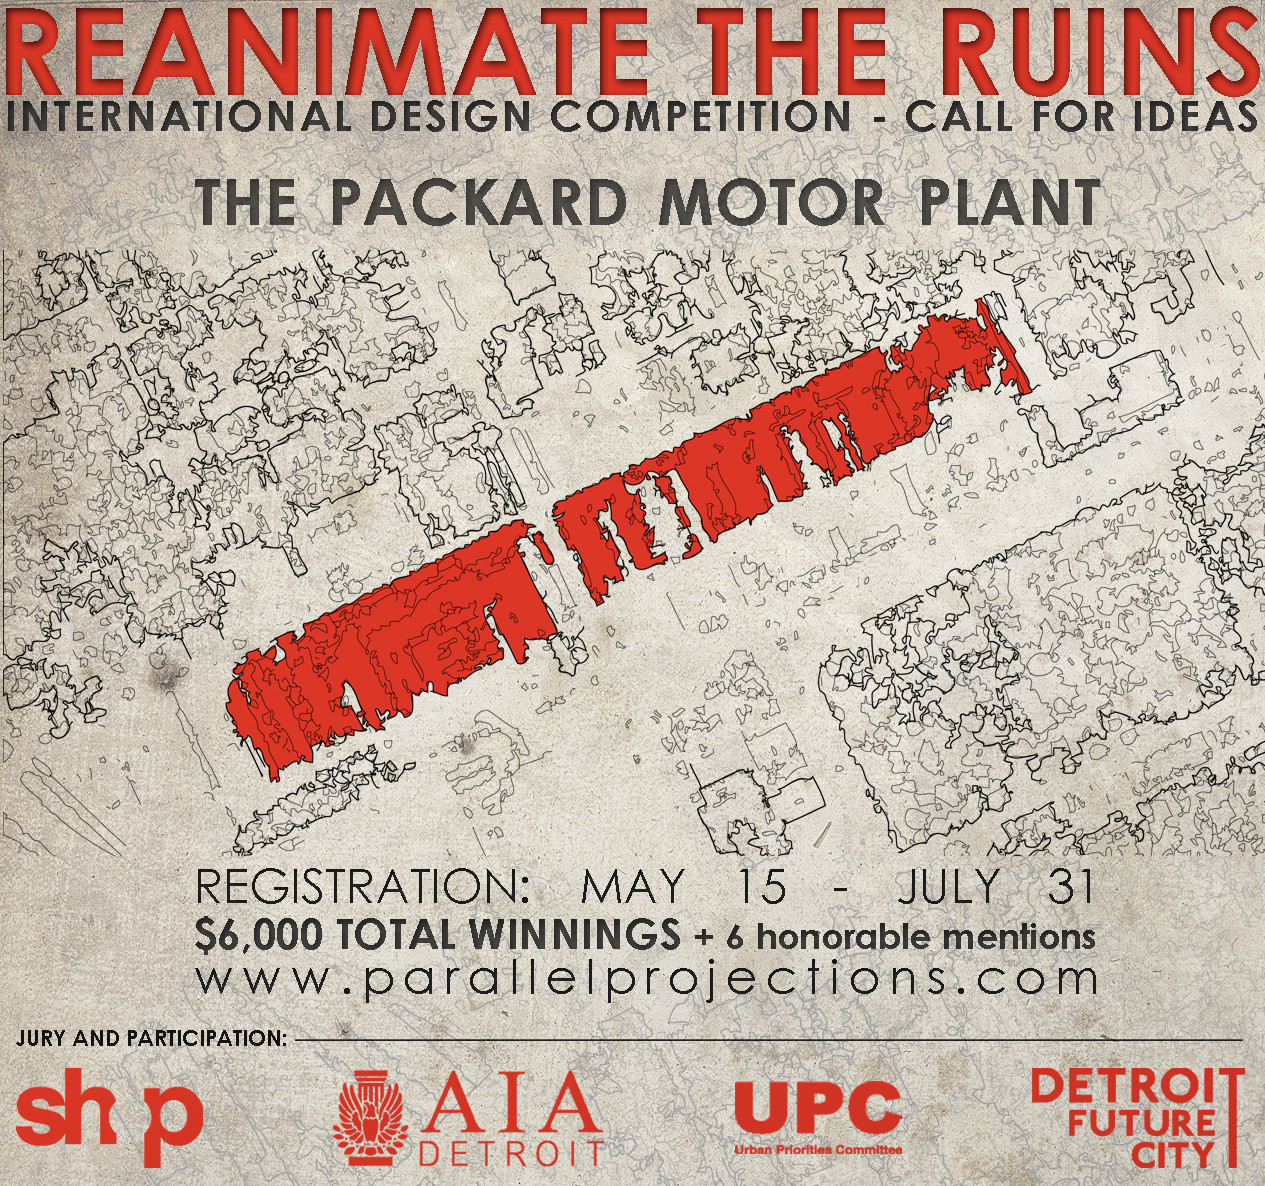 Reanimate the Ruins International Design Competition